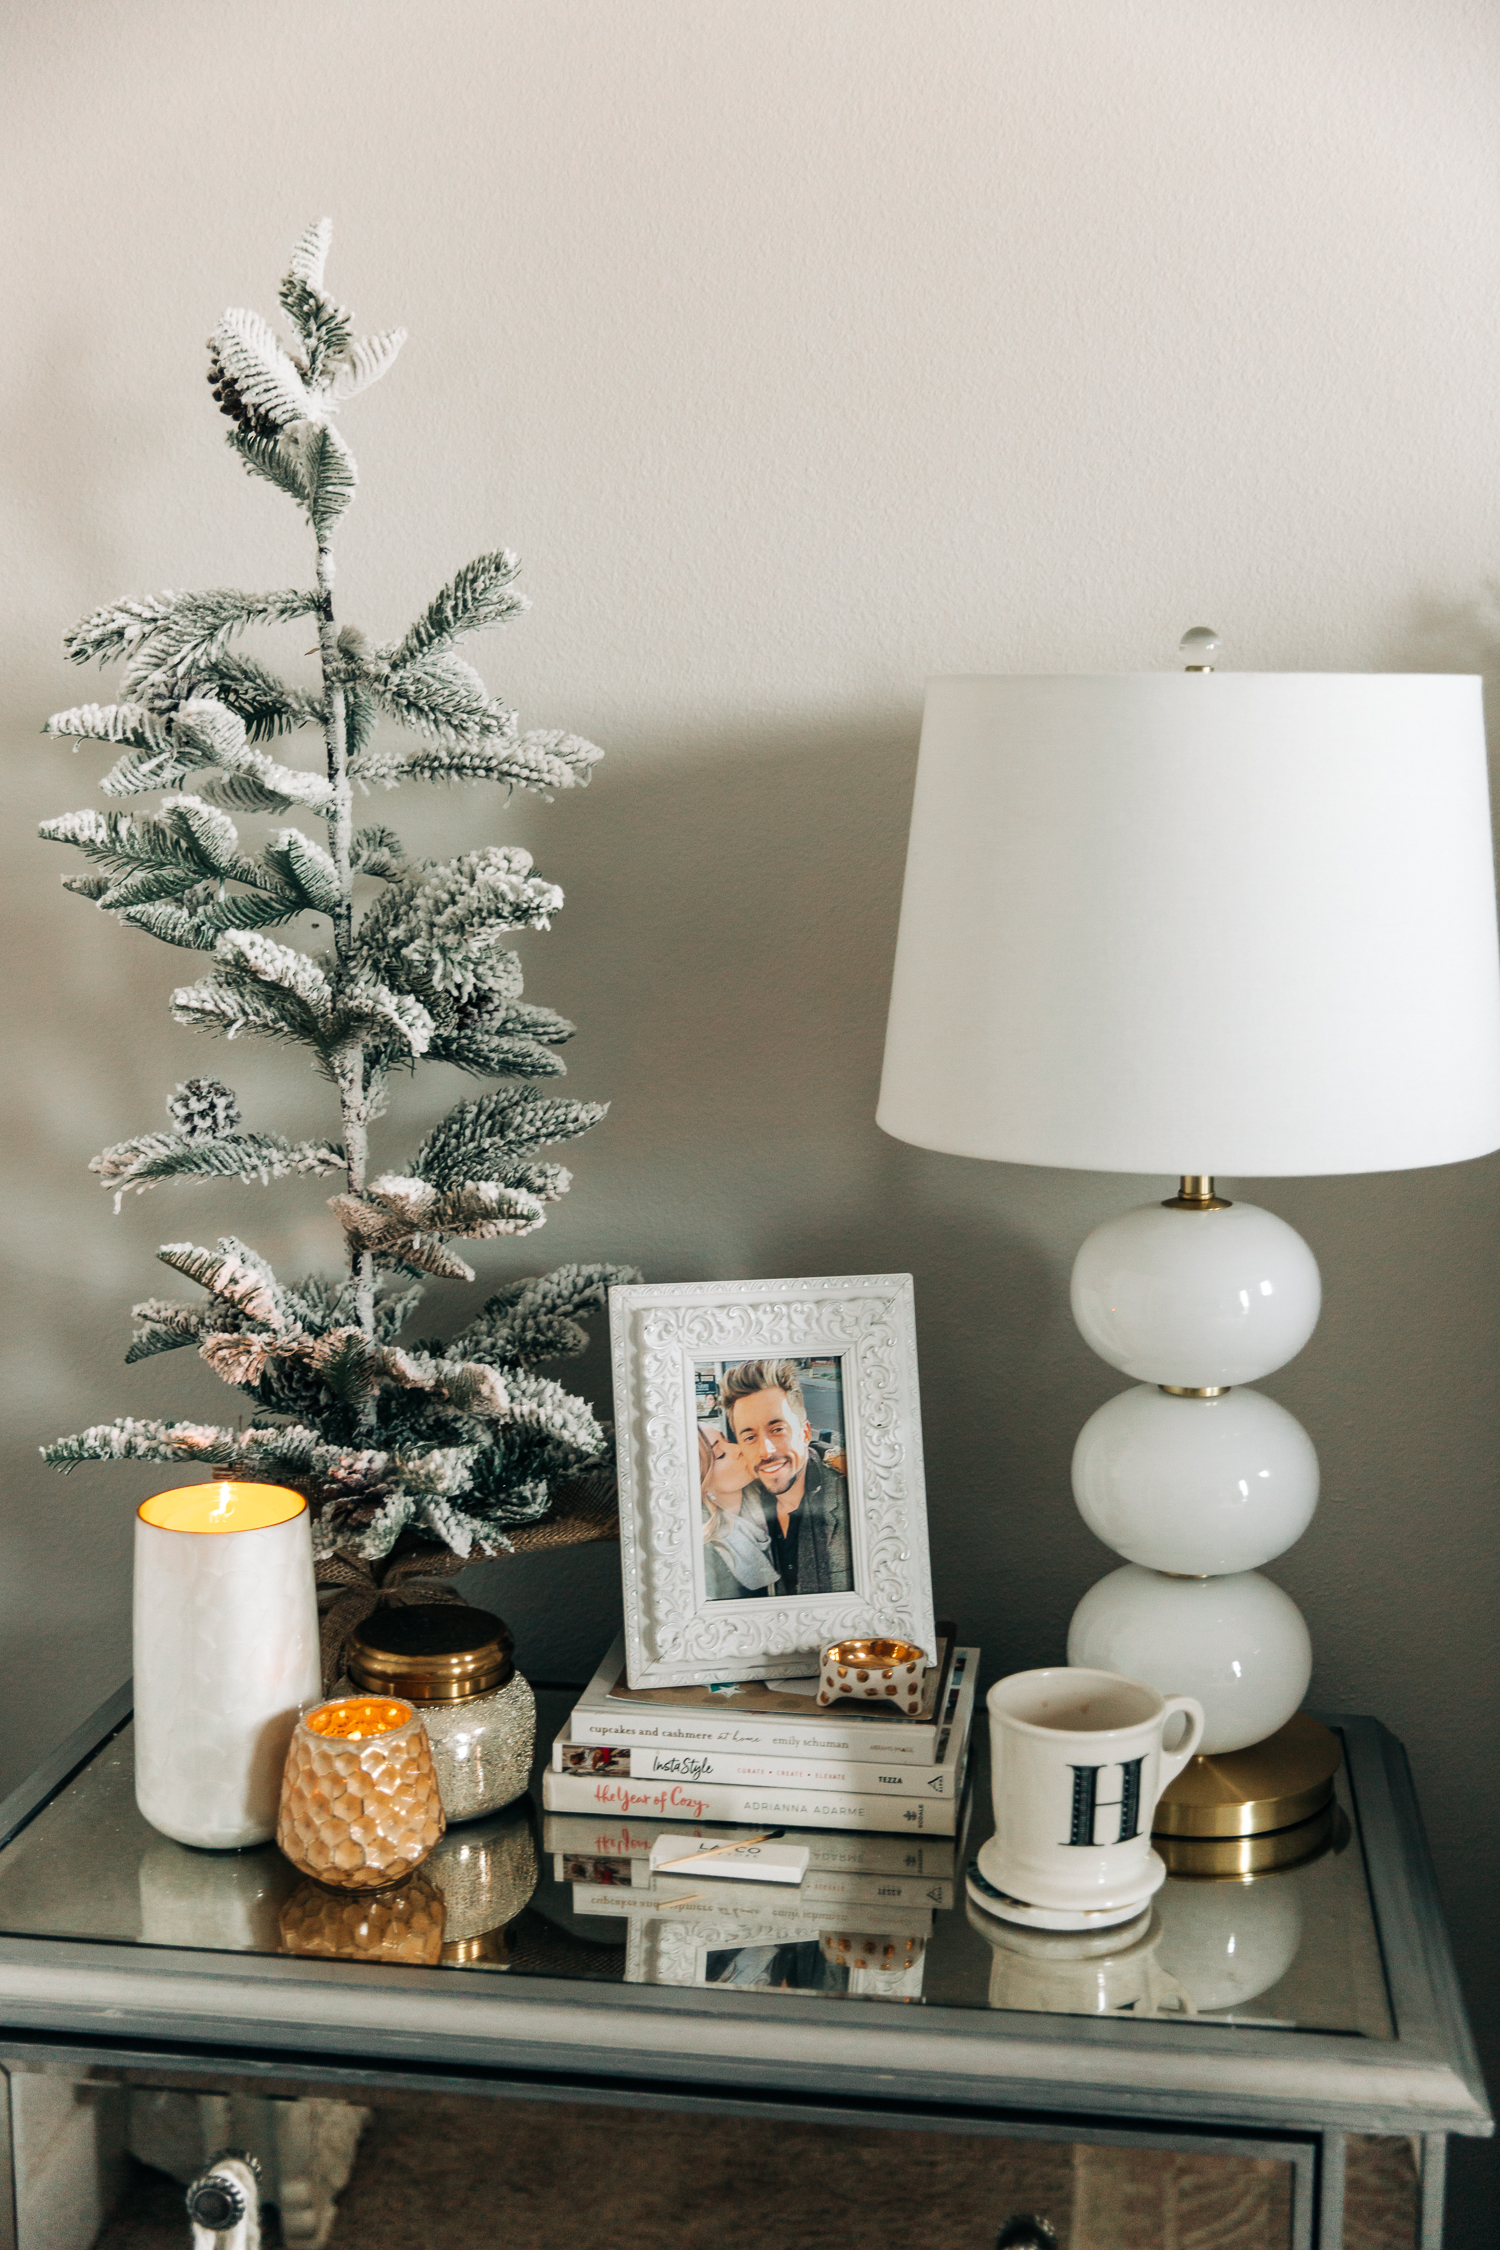 anthropologie holiday gifts